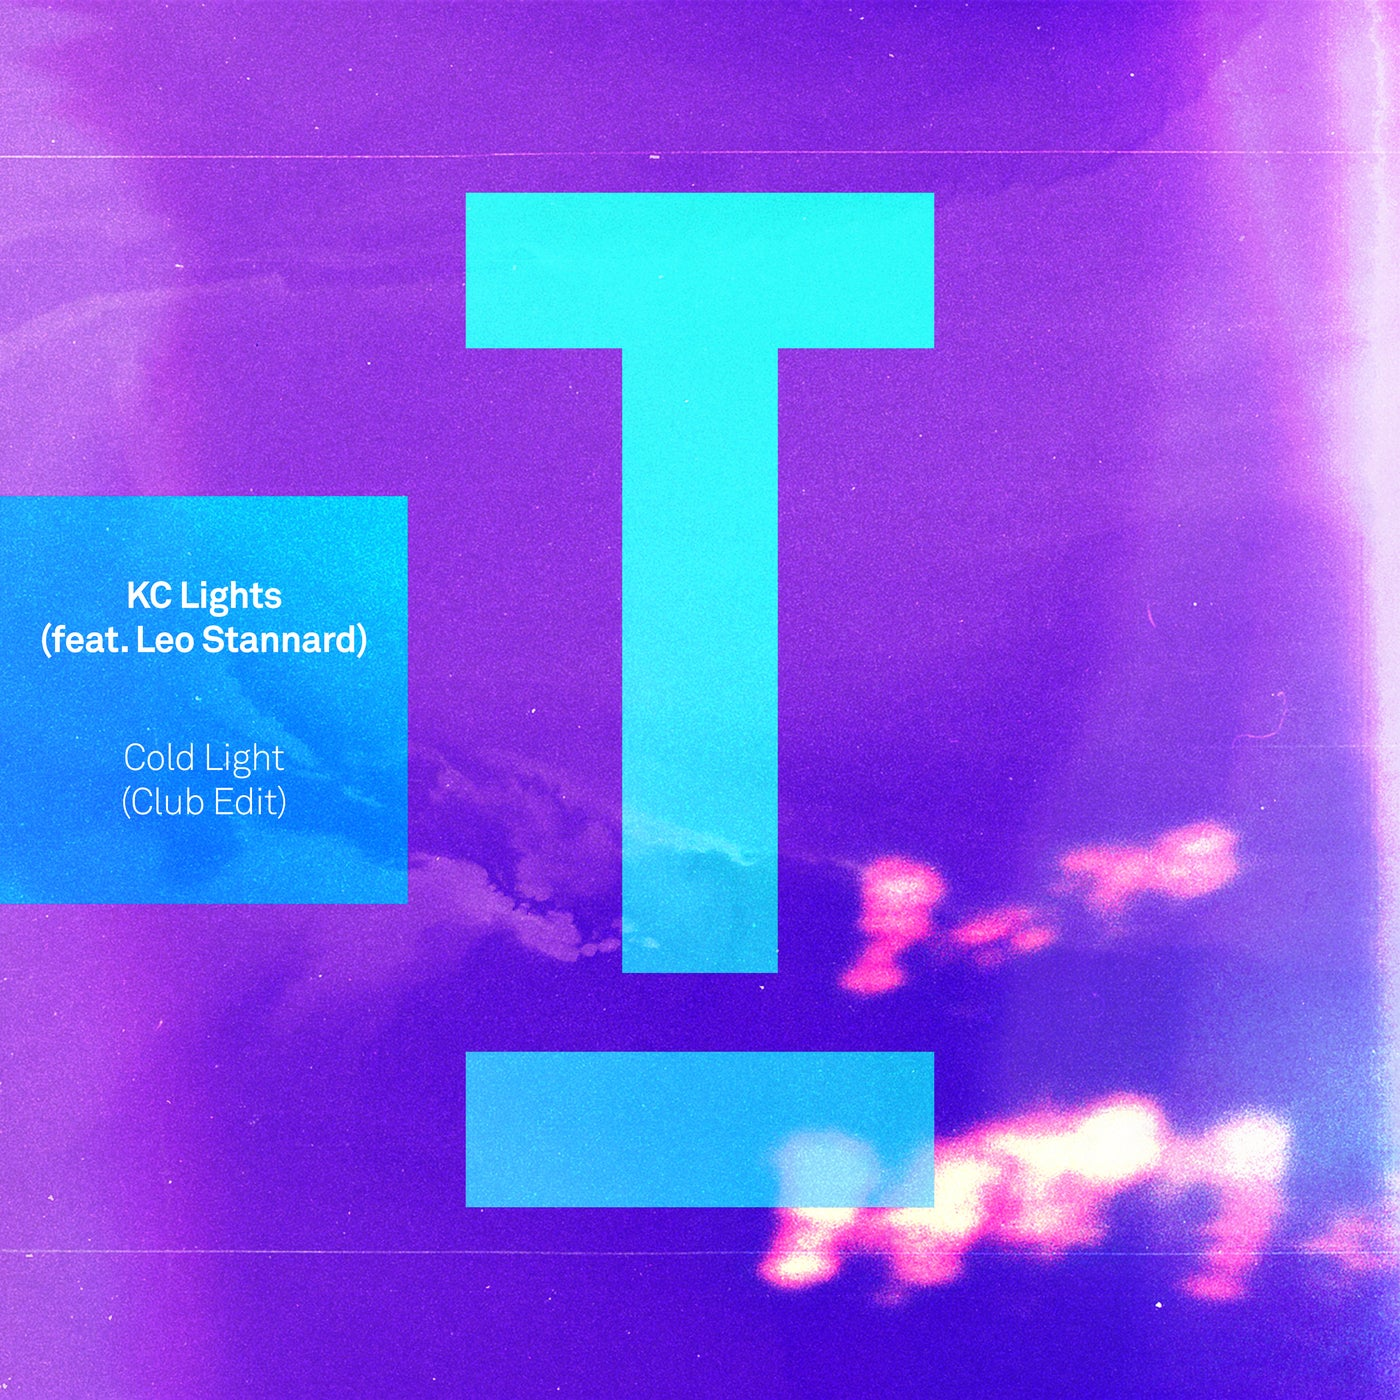 Cold Light feat. Leo Stannard (Extended Club Mix)